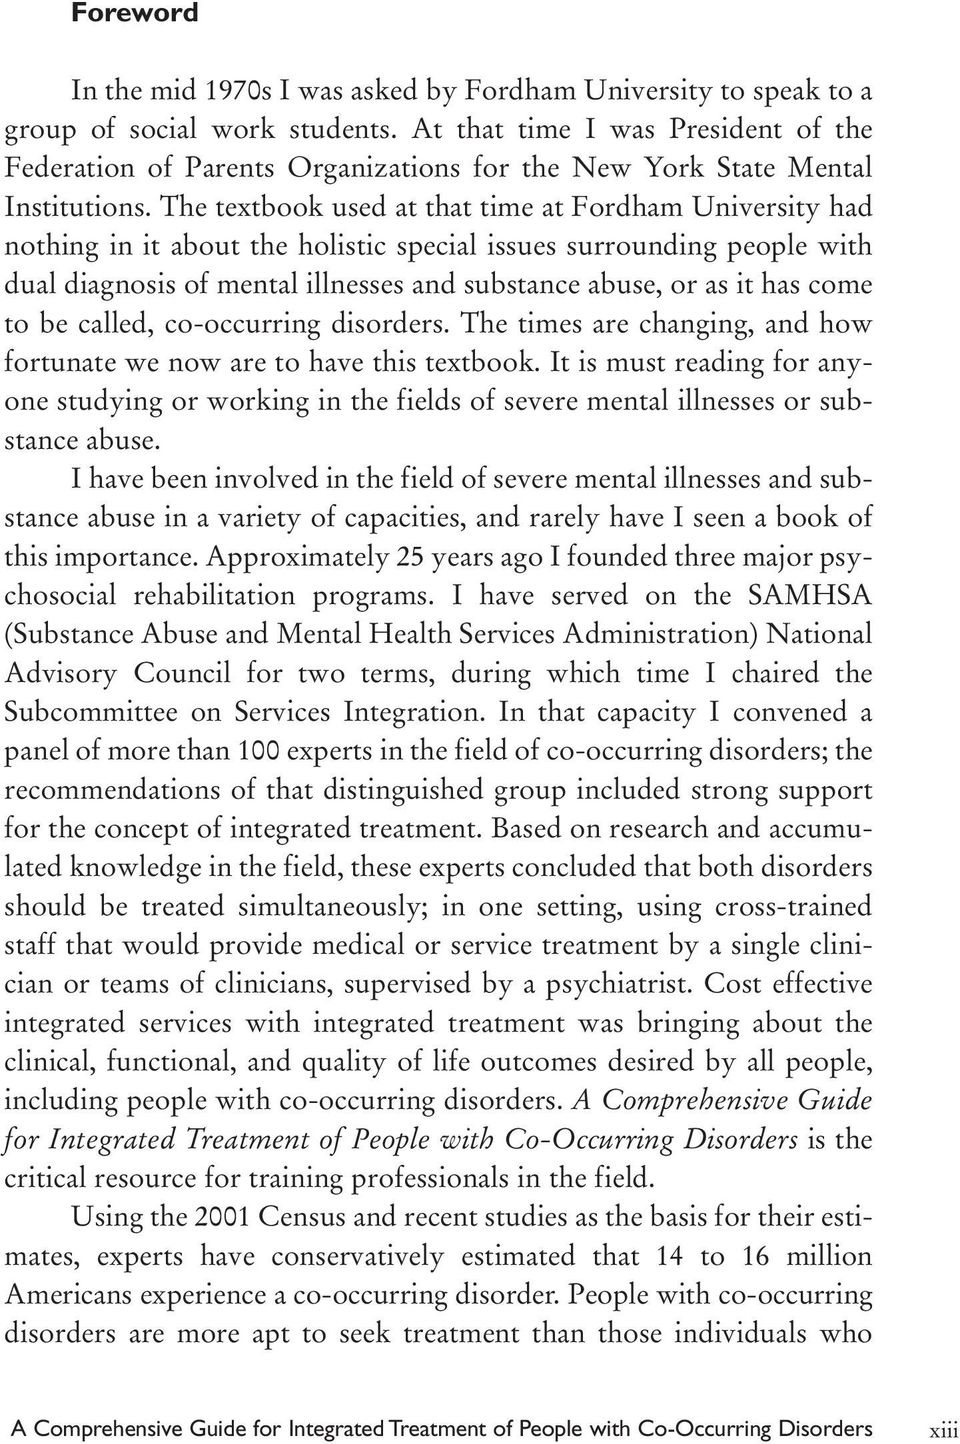 The textbook used at that time at Fordham University had nothing in it about the holistic special issues surrounding people with dual diagnosis of mental illnesses and substance abuse, or as it has